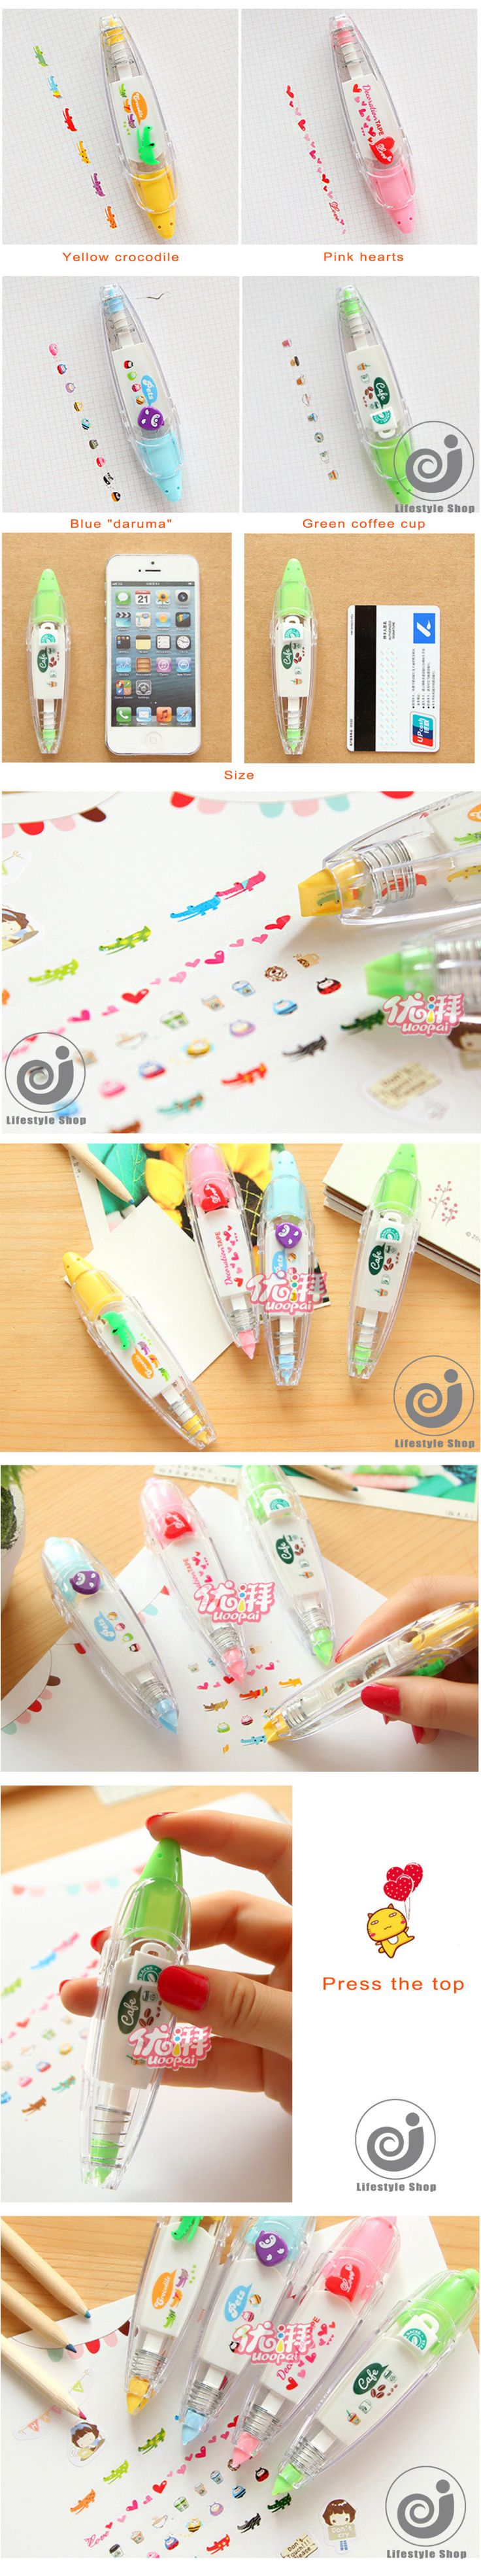 2pcs korean cute correction tape kawaii stationery for student school supplies DIY Scrapbooking Stickers-in Correction Tape from Office & School Supplies on Aliexpress.com | Alibaba Group